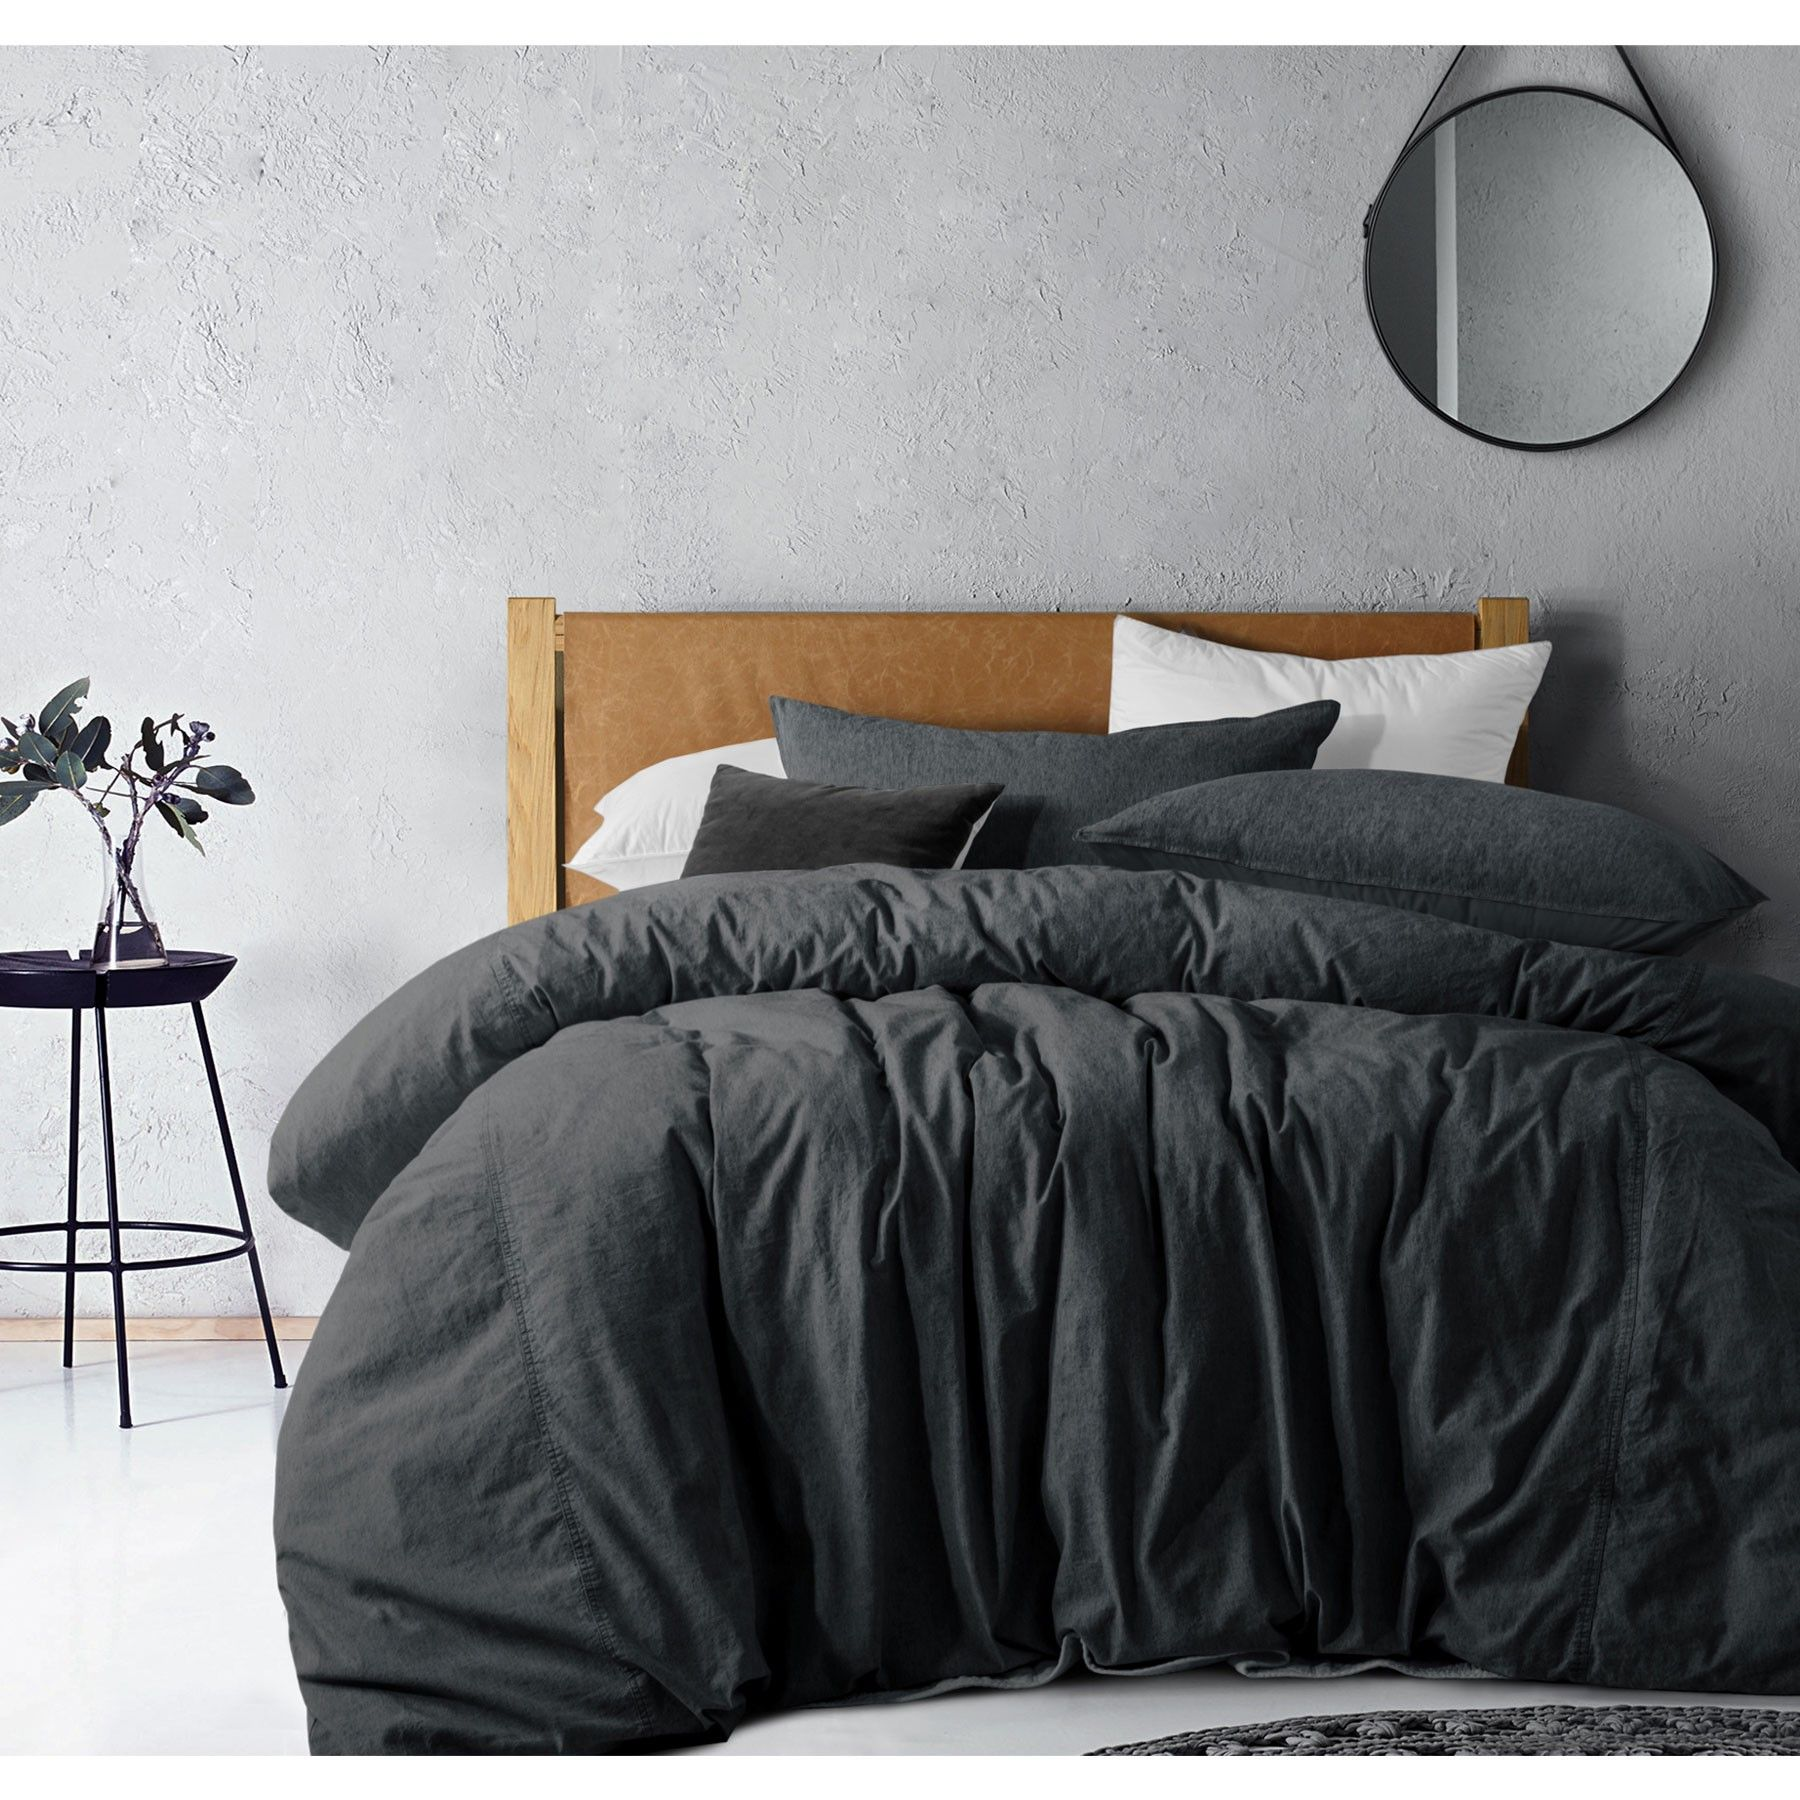 Overdyed Denim Linen Cotton Quilt Cover Set Dark Grey Also Known As Black By Accessorize Quilt Cover Sets Cotton Quilt Covers Quilt Cover